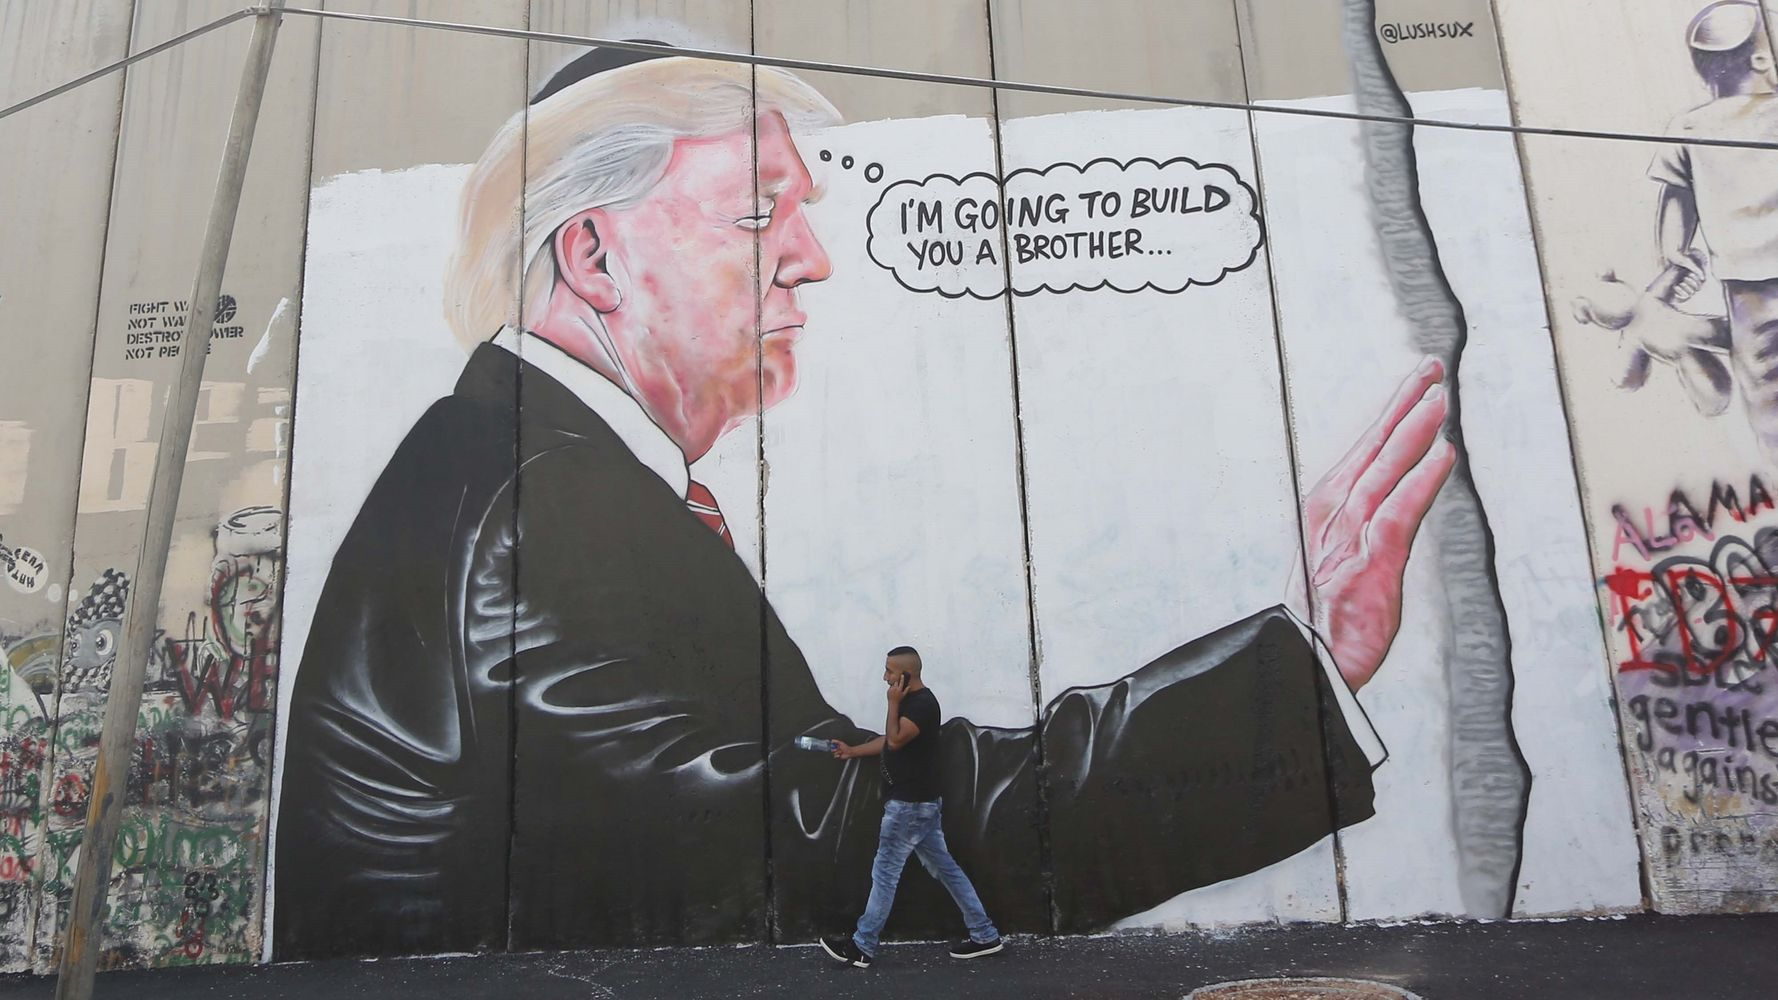 West Bank Street Art Mural Trolls Trump Over Proposed Mexico Border Wall